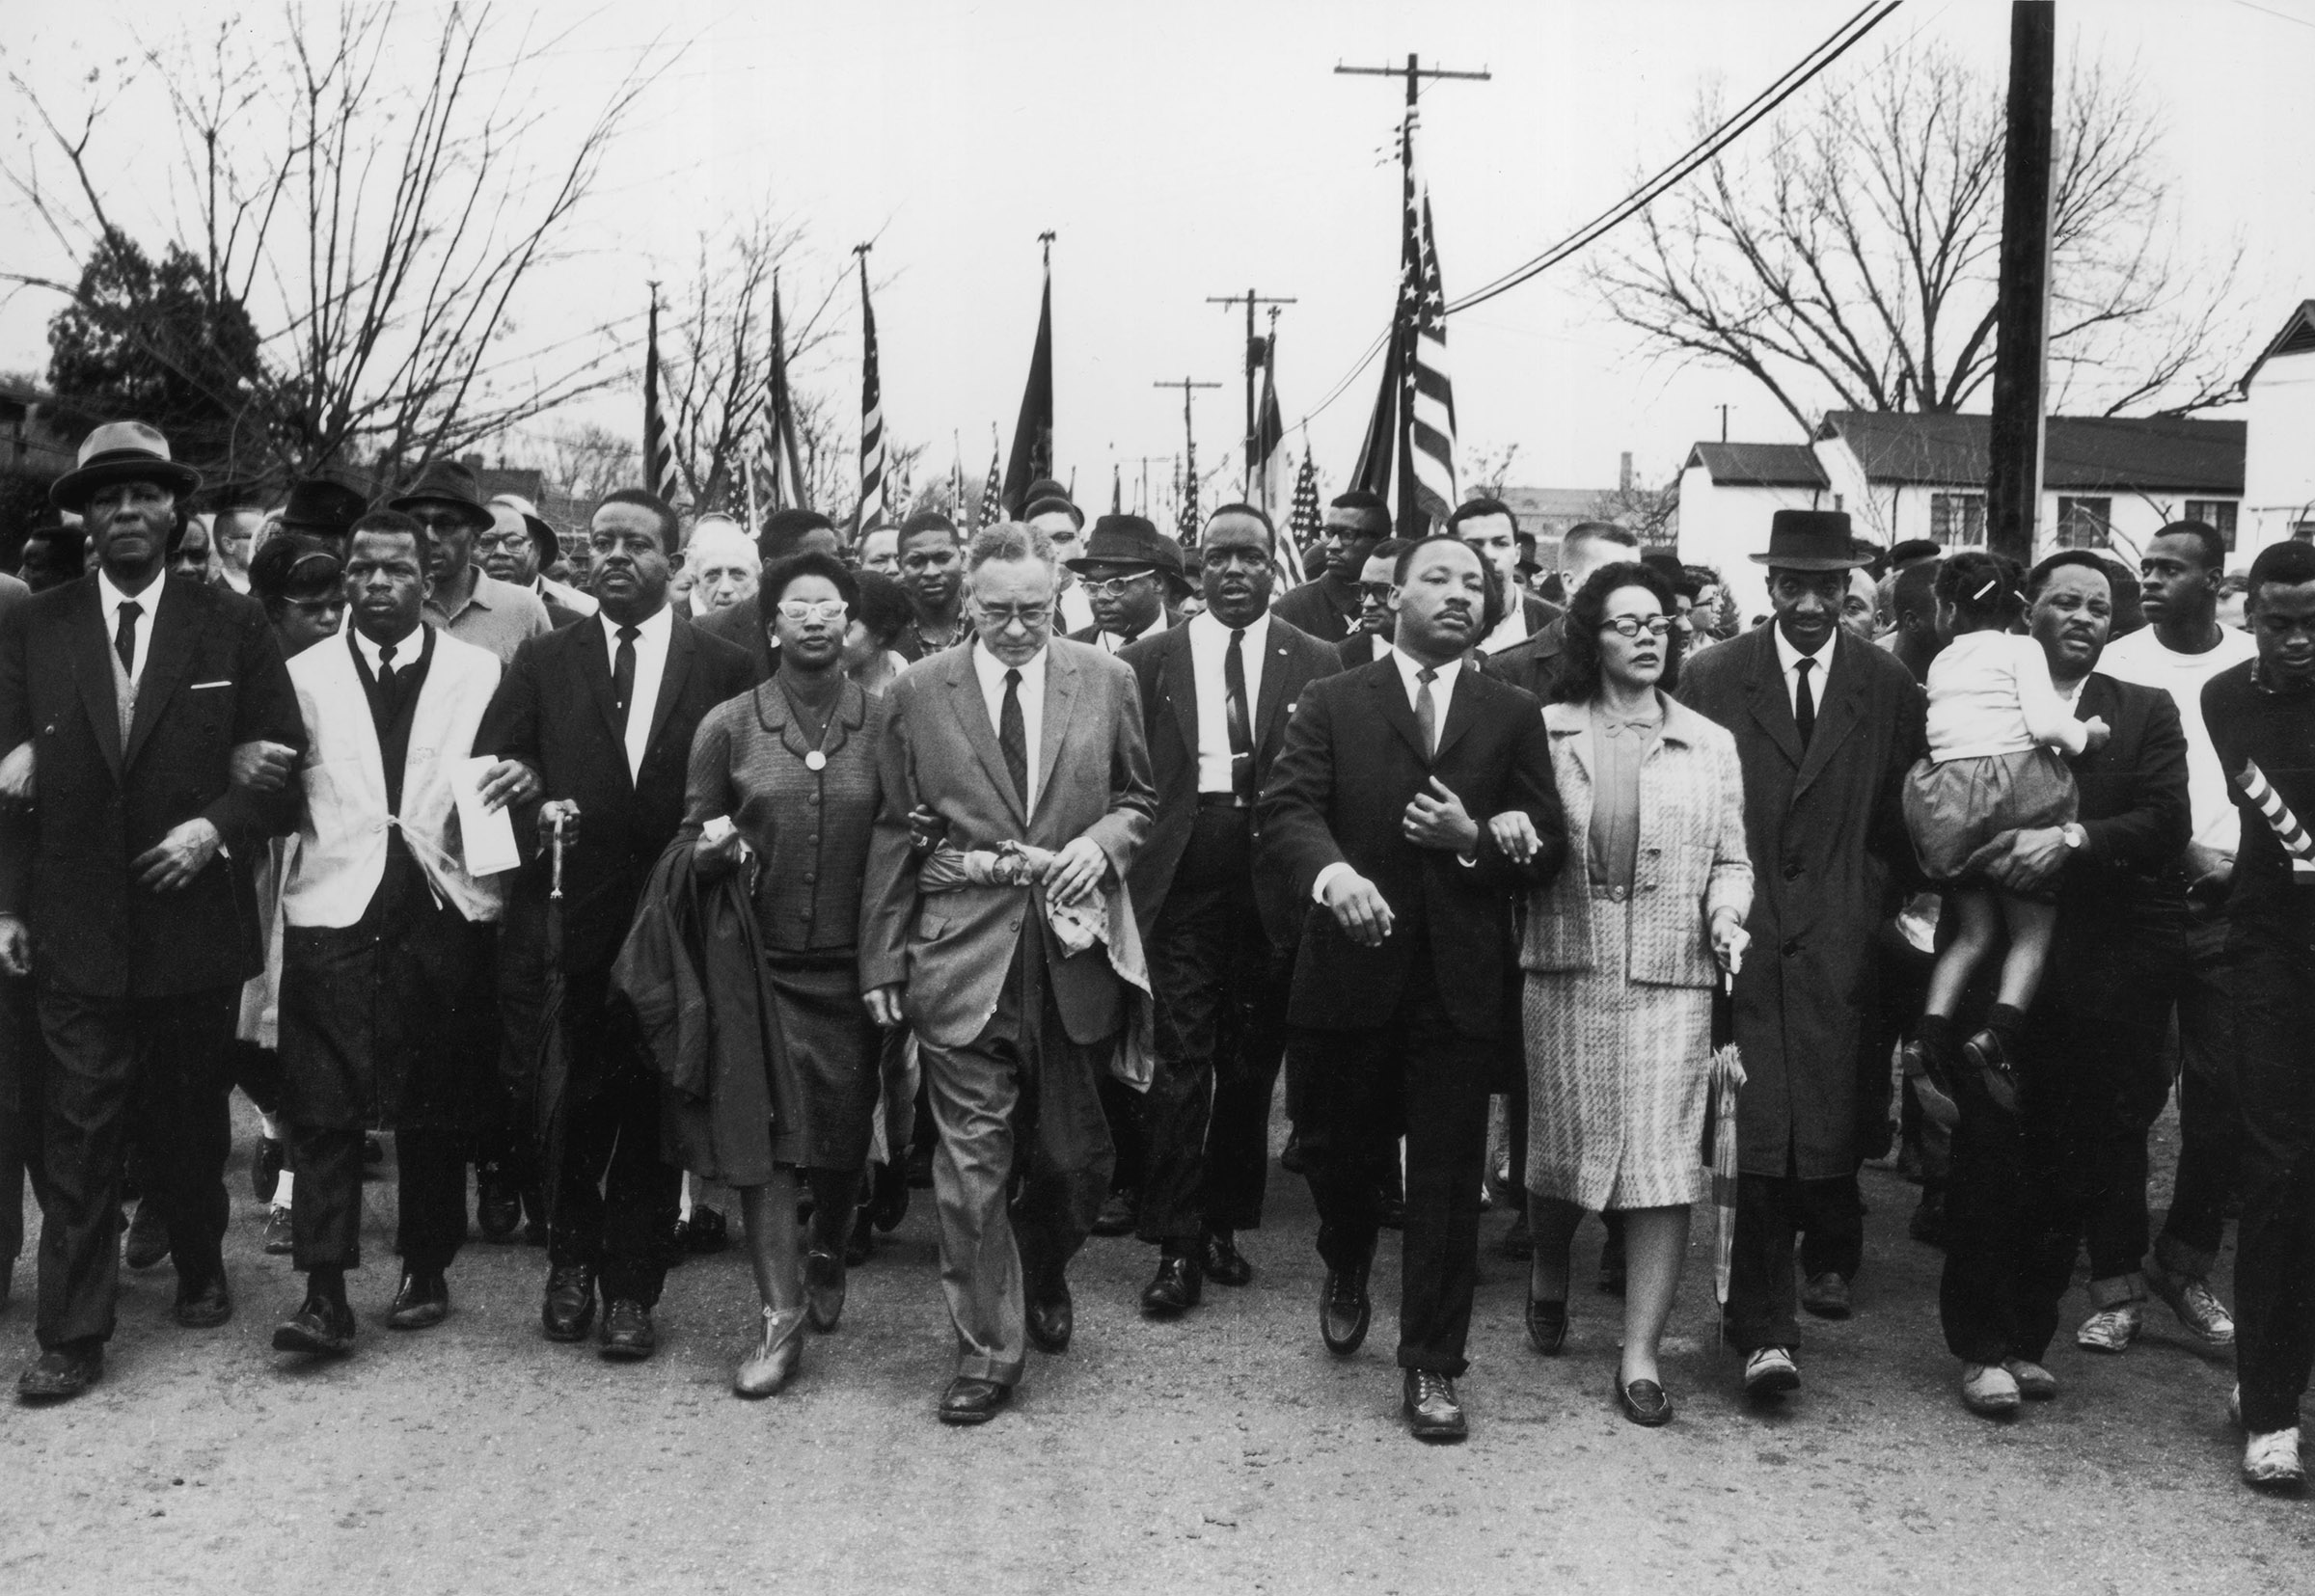 John Lewis (second from left) joins American civil-rights campaigner Martin Luther King Jr. and his wife Coretta Scott King in a march from Selma, Ala., to the state capital in Montgomery on March 30, 1965.